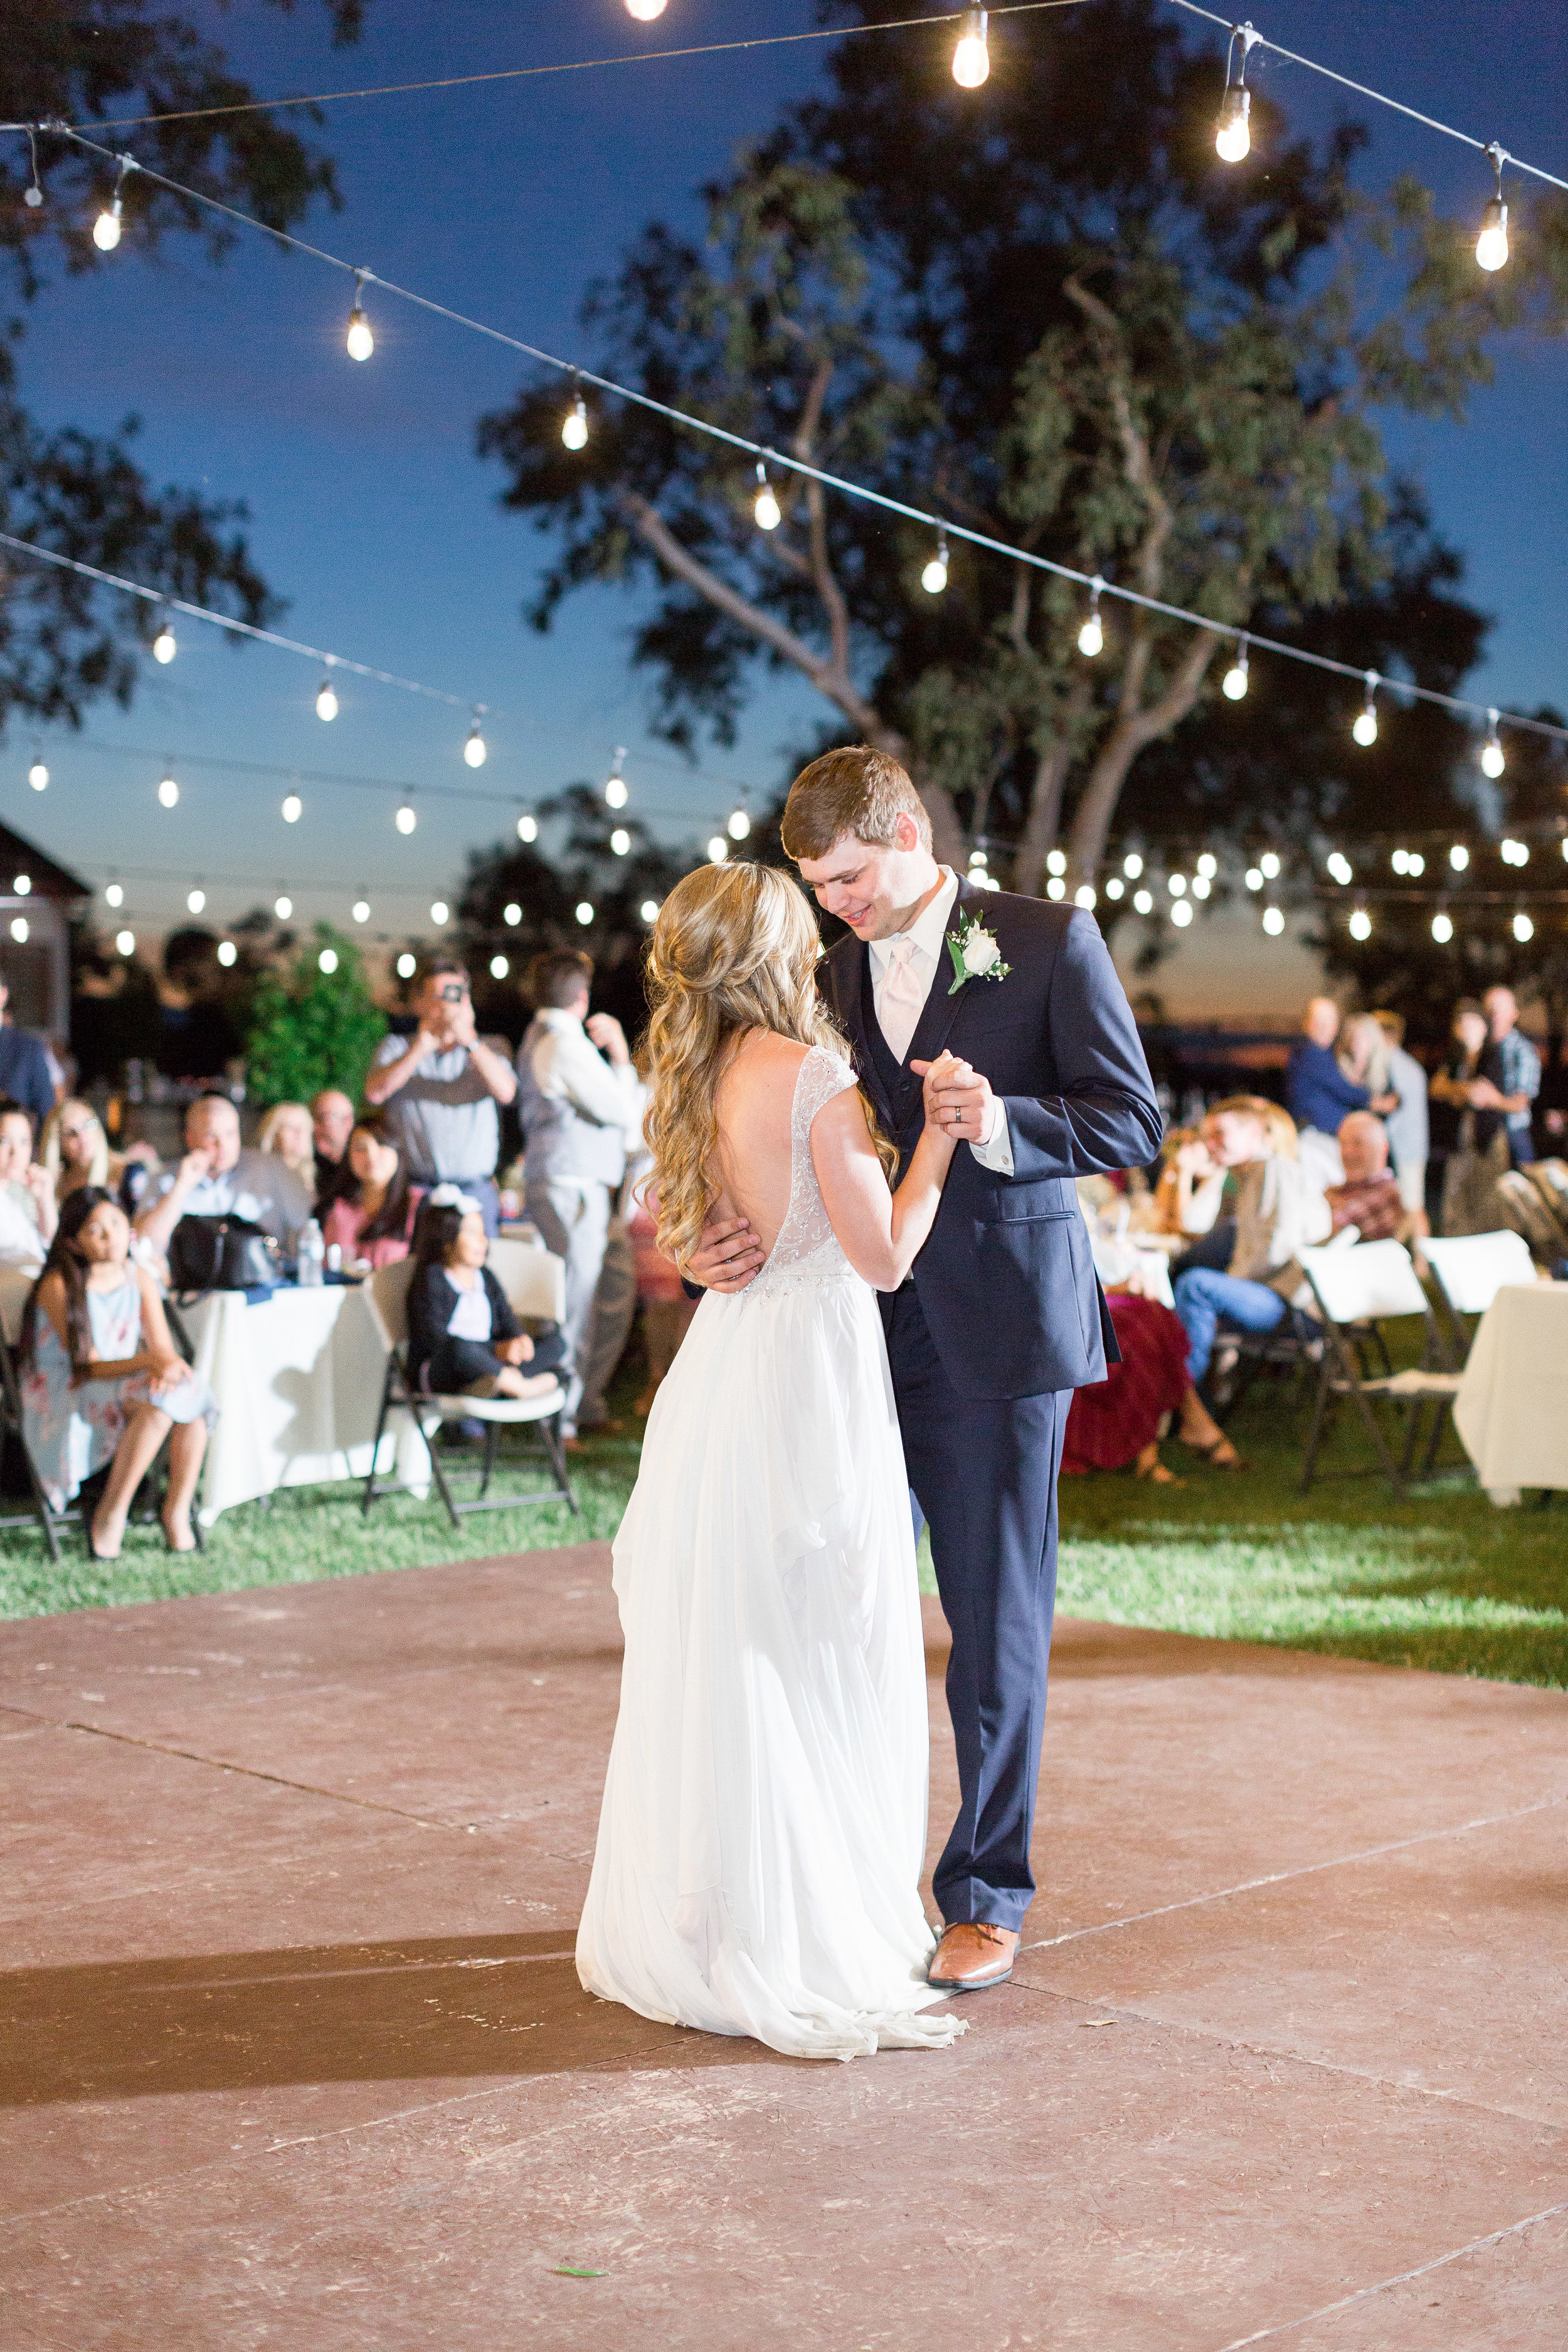 A-Private-Ranch-Northern-California-Wedding (227 of 229).jpg